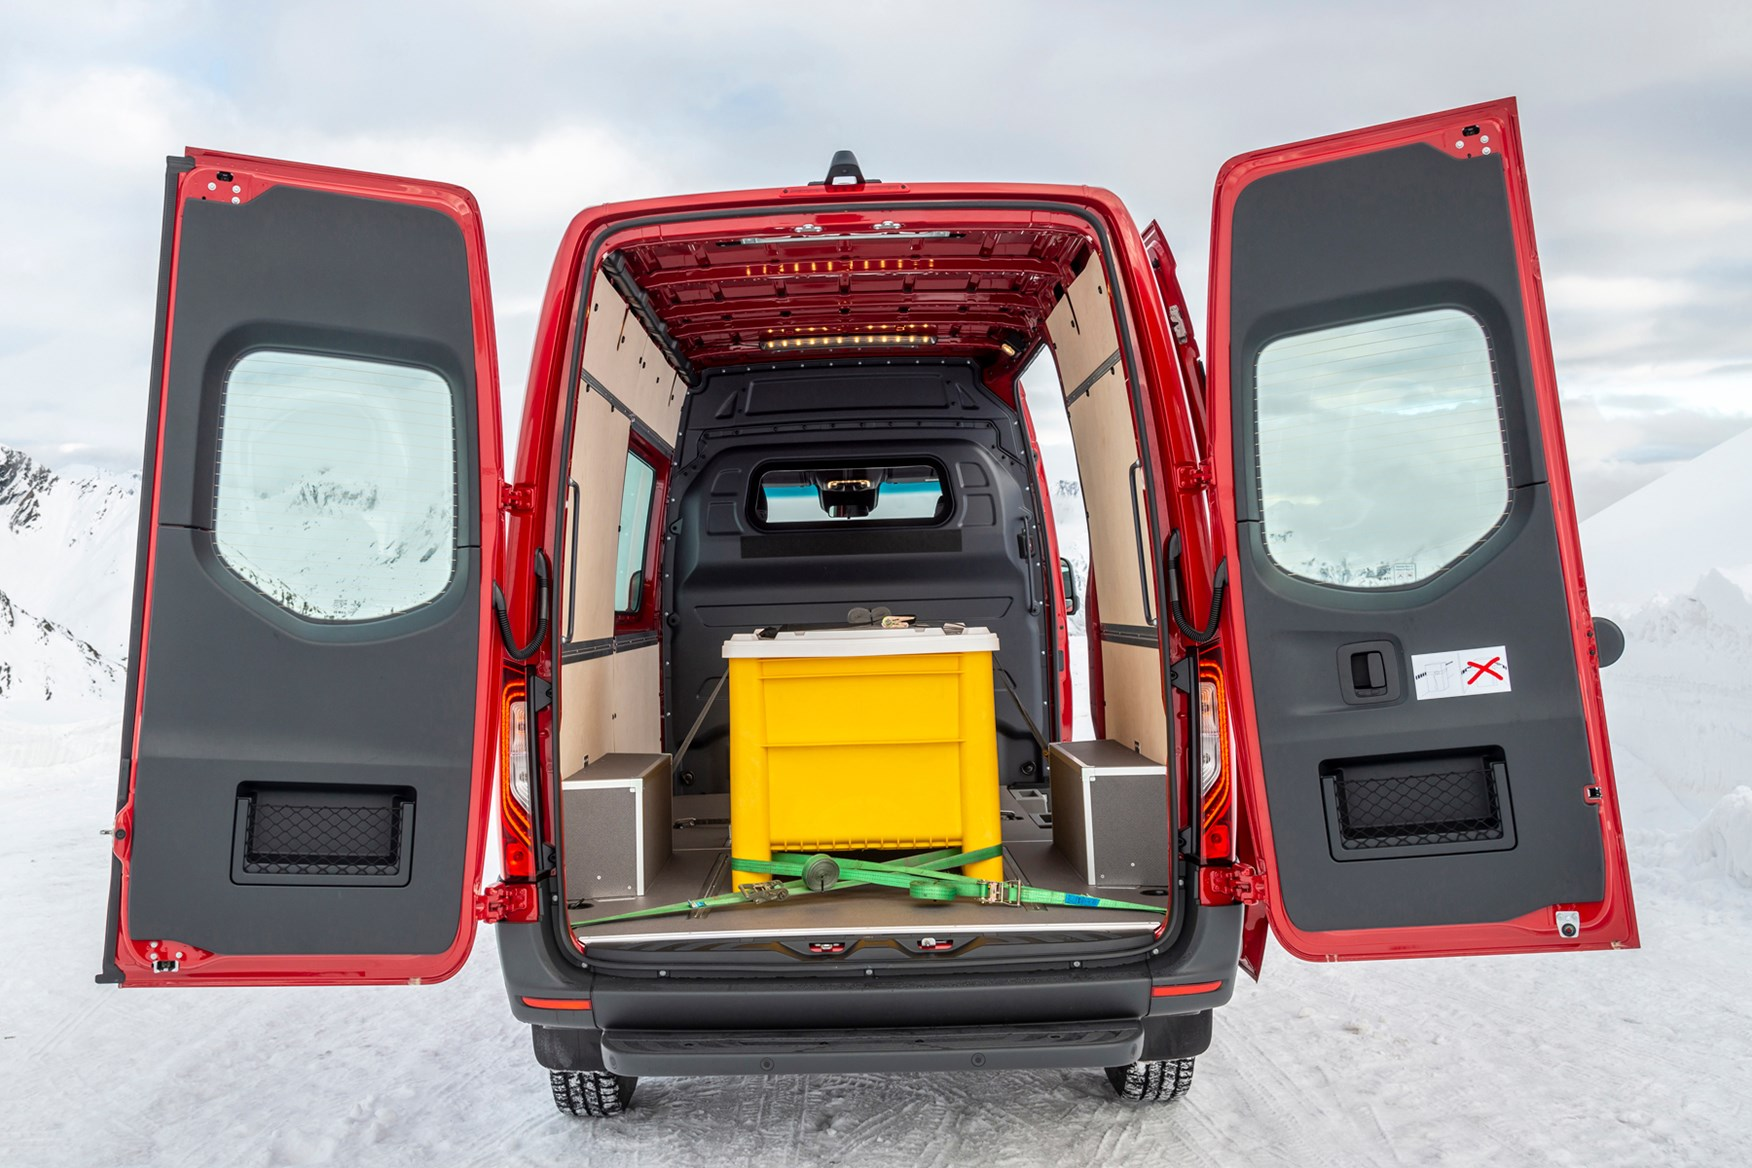 Mercedes Sprinter 4x4 has a maximum payload of 1,220kg in some iterations